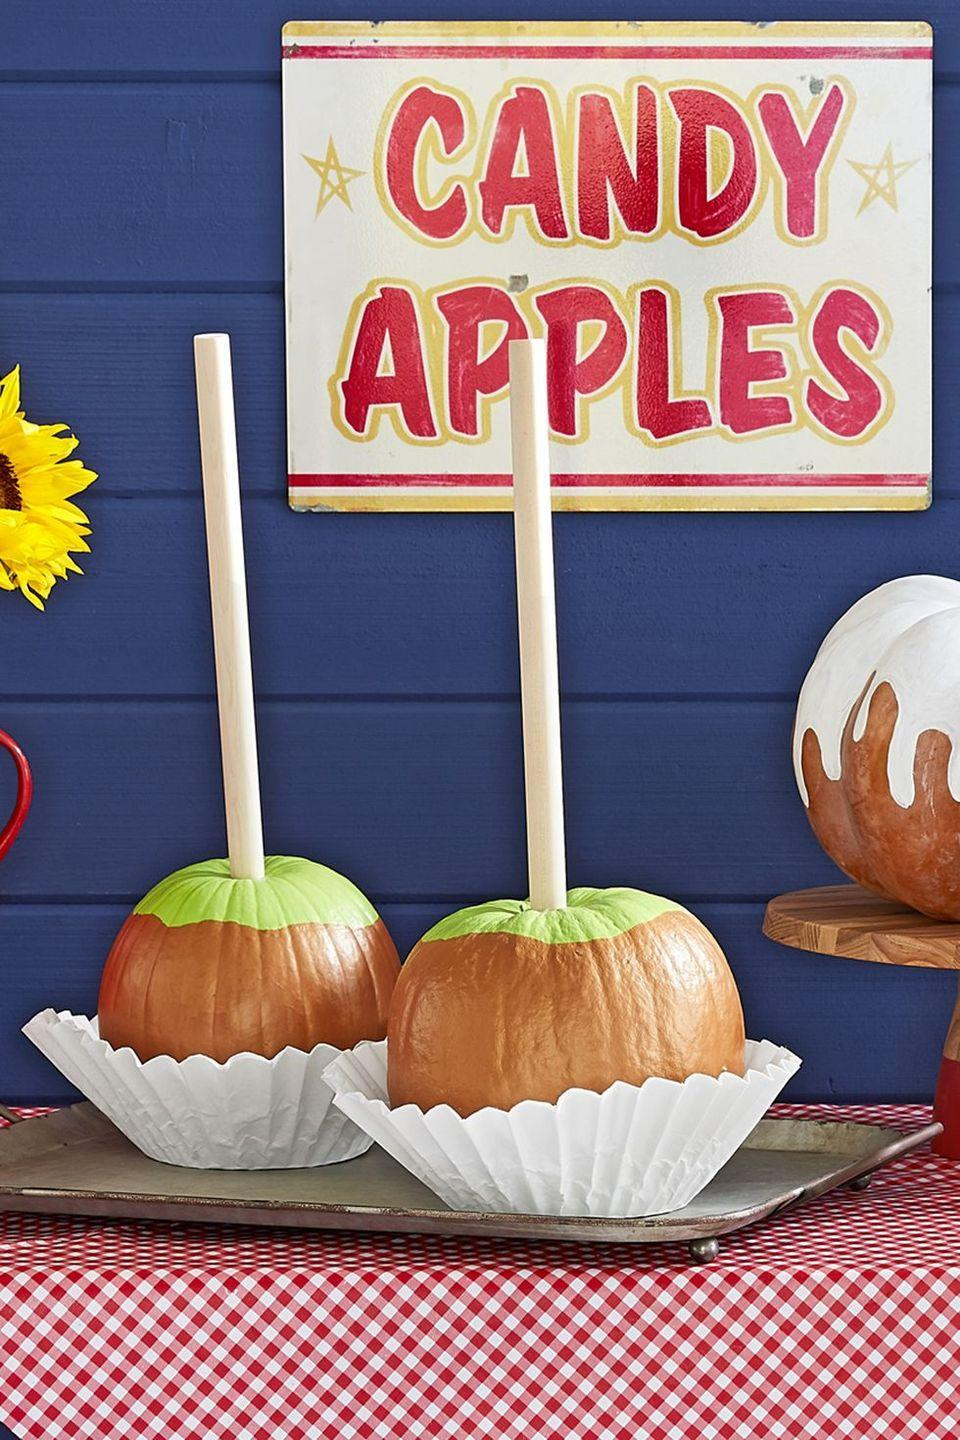 <p>Nothing tops the real thing, but these adorable mini pumpkins come pretty close. But if you don't want to tease your party guests, make sure you have some edible caramel apples on hand, too. </p>